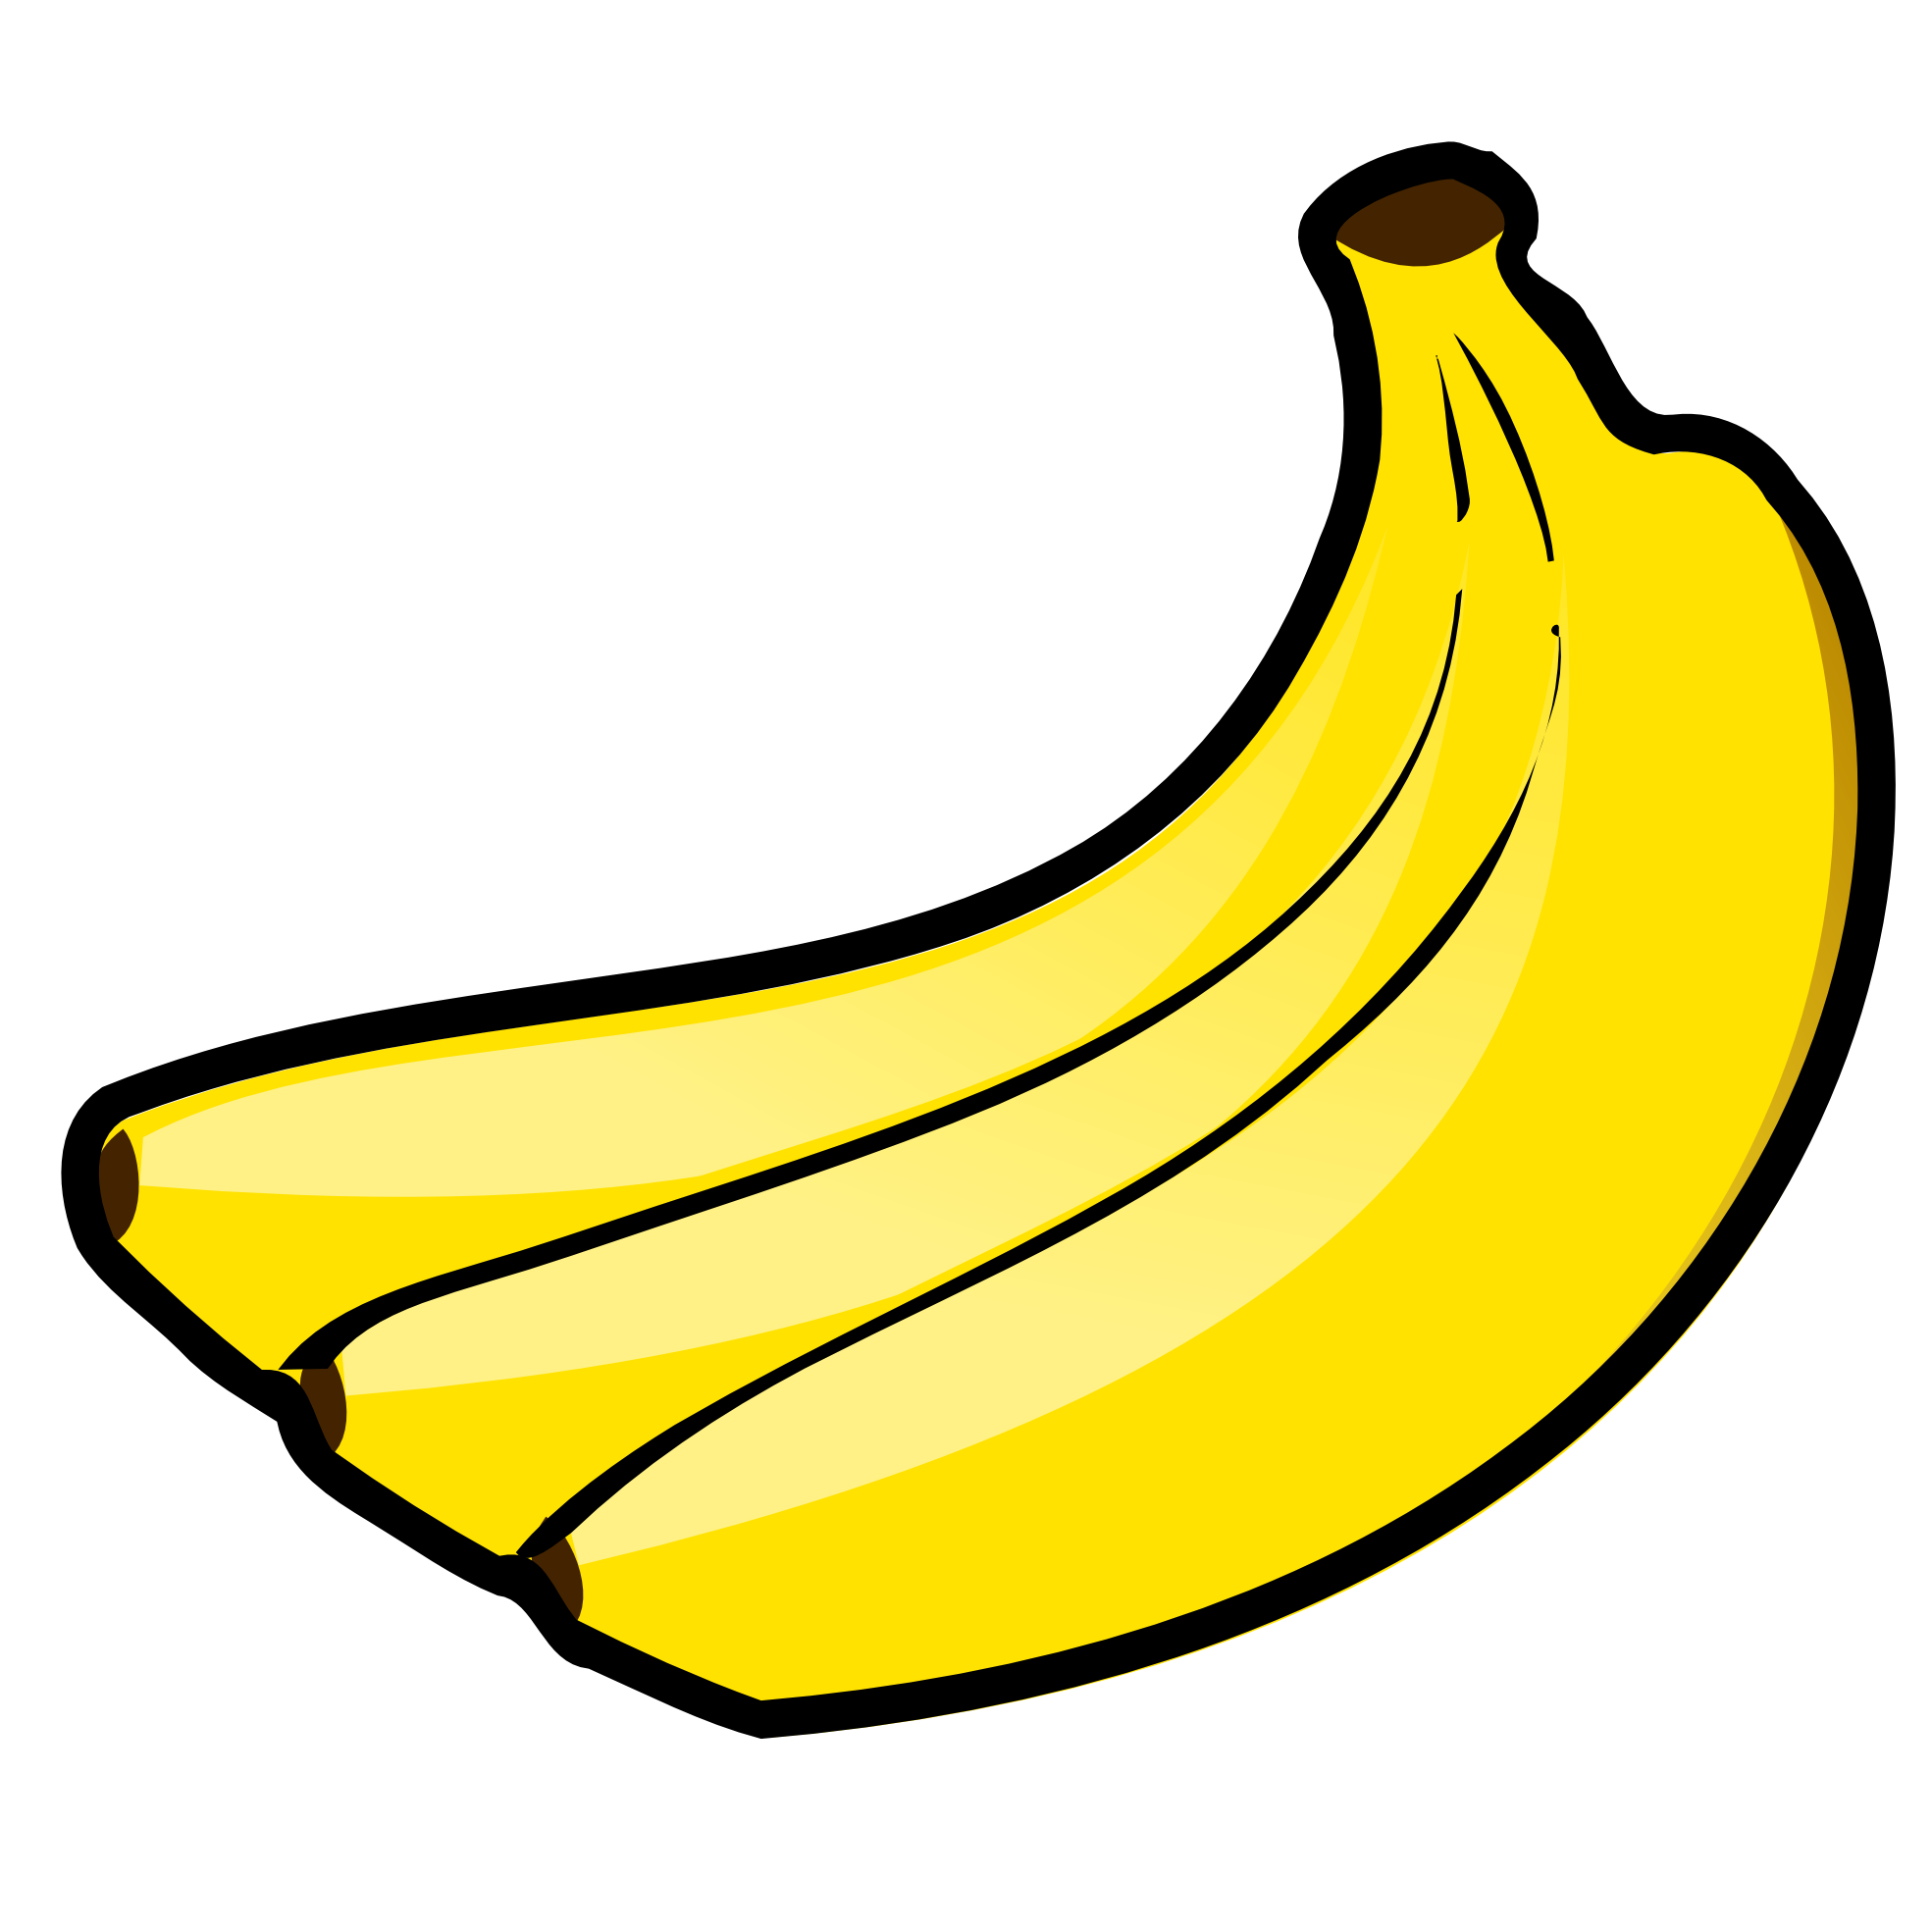 Transparent png downloads free. Clipart banana high quality